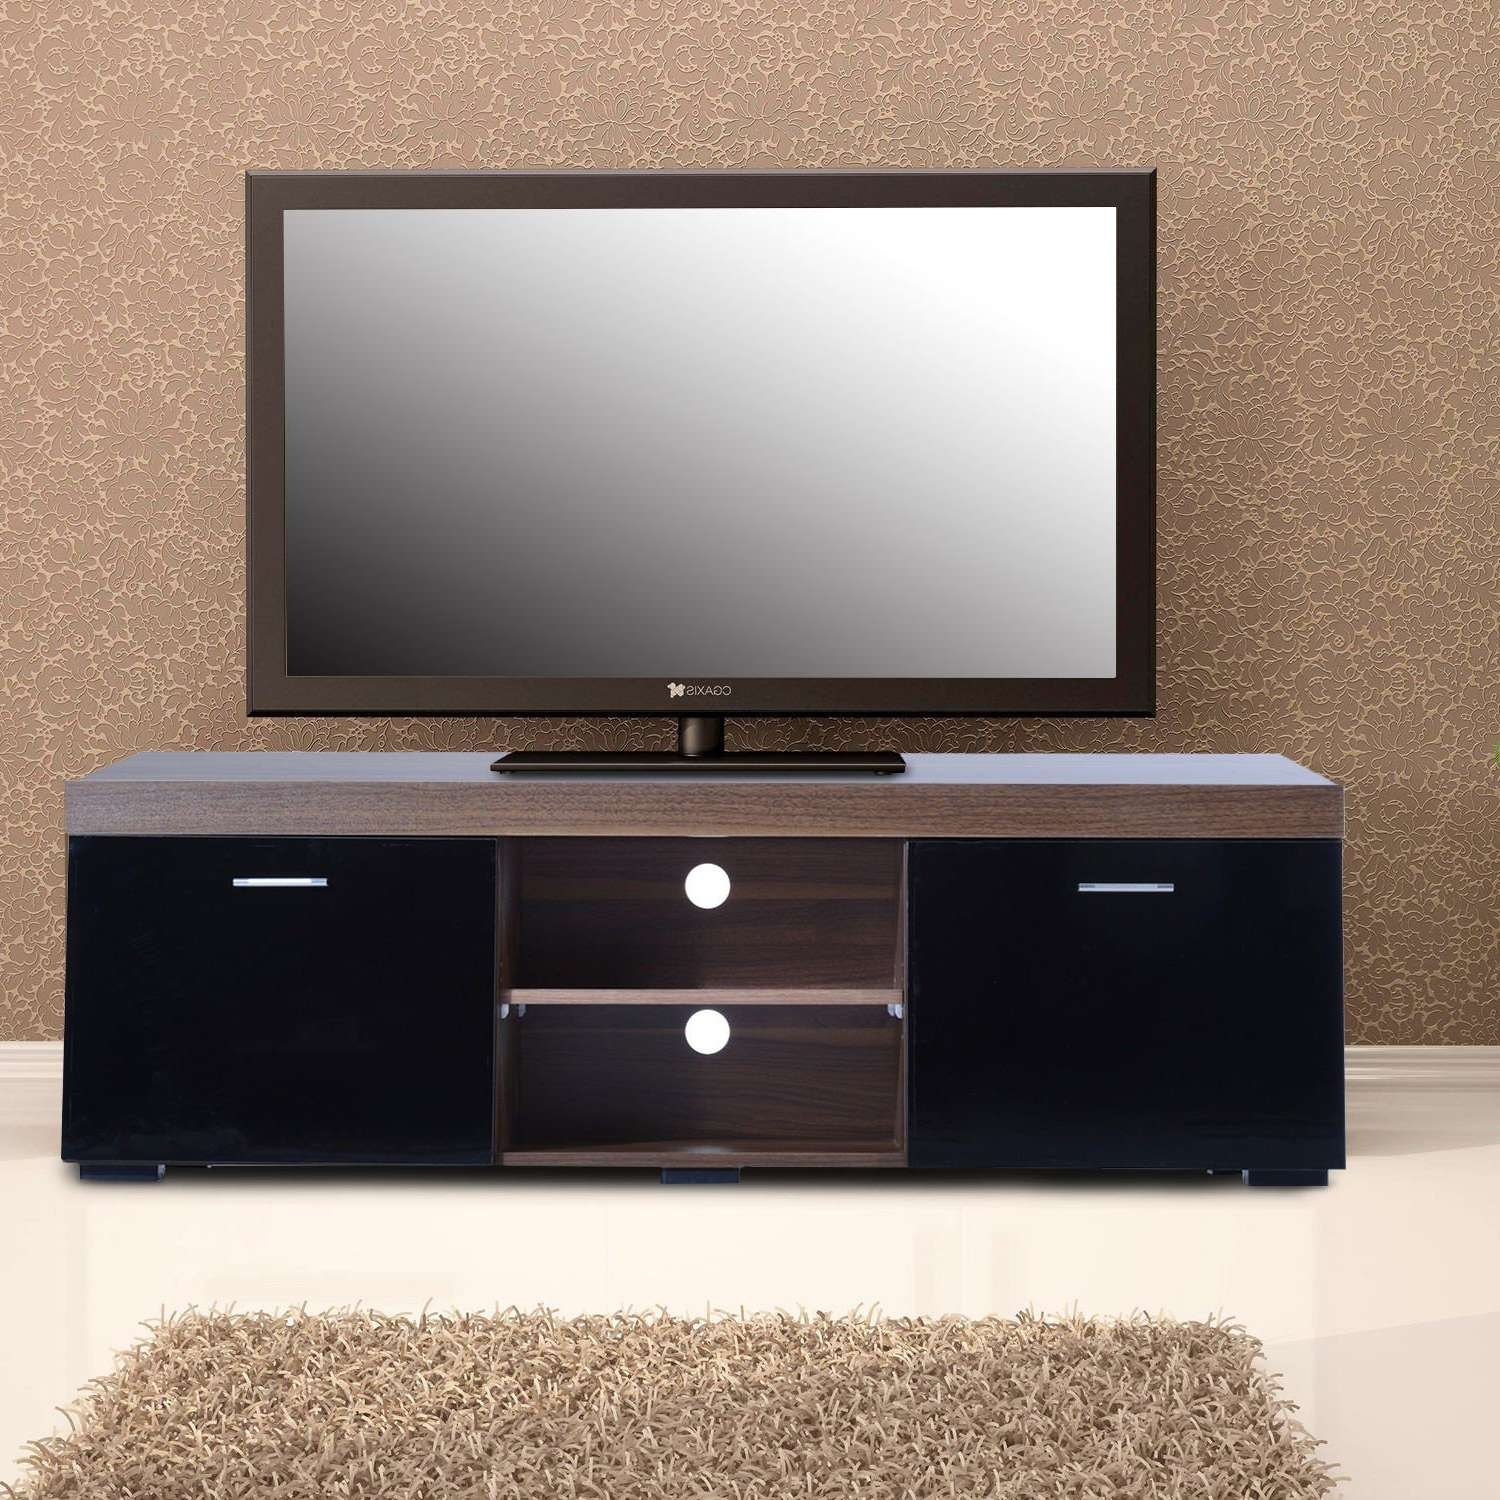 Tv Stand Storage Cabinet W/ Shelves Walnut/black Within Tv Cabinets With Storage (View 4 of 20)